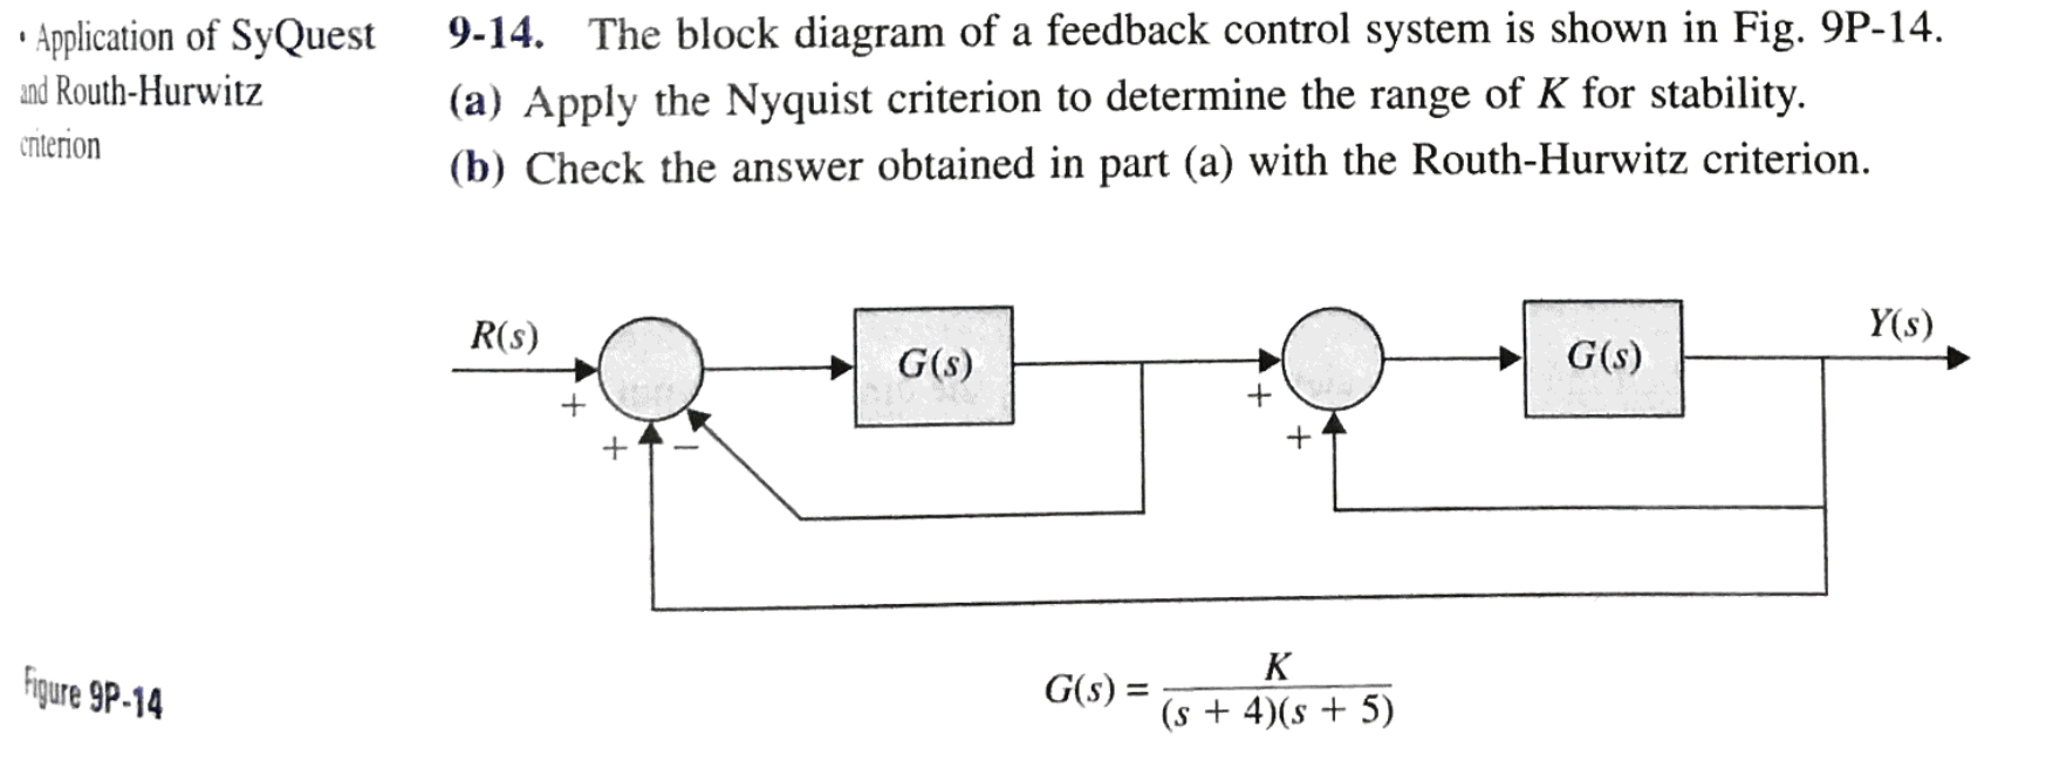 Question: The block diagram of a feedback control system is shown in Fig.  9P-14. Apply the Nyquist criterio.